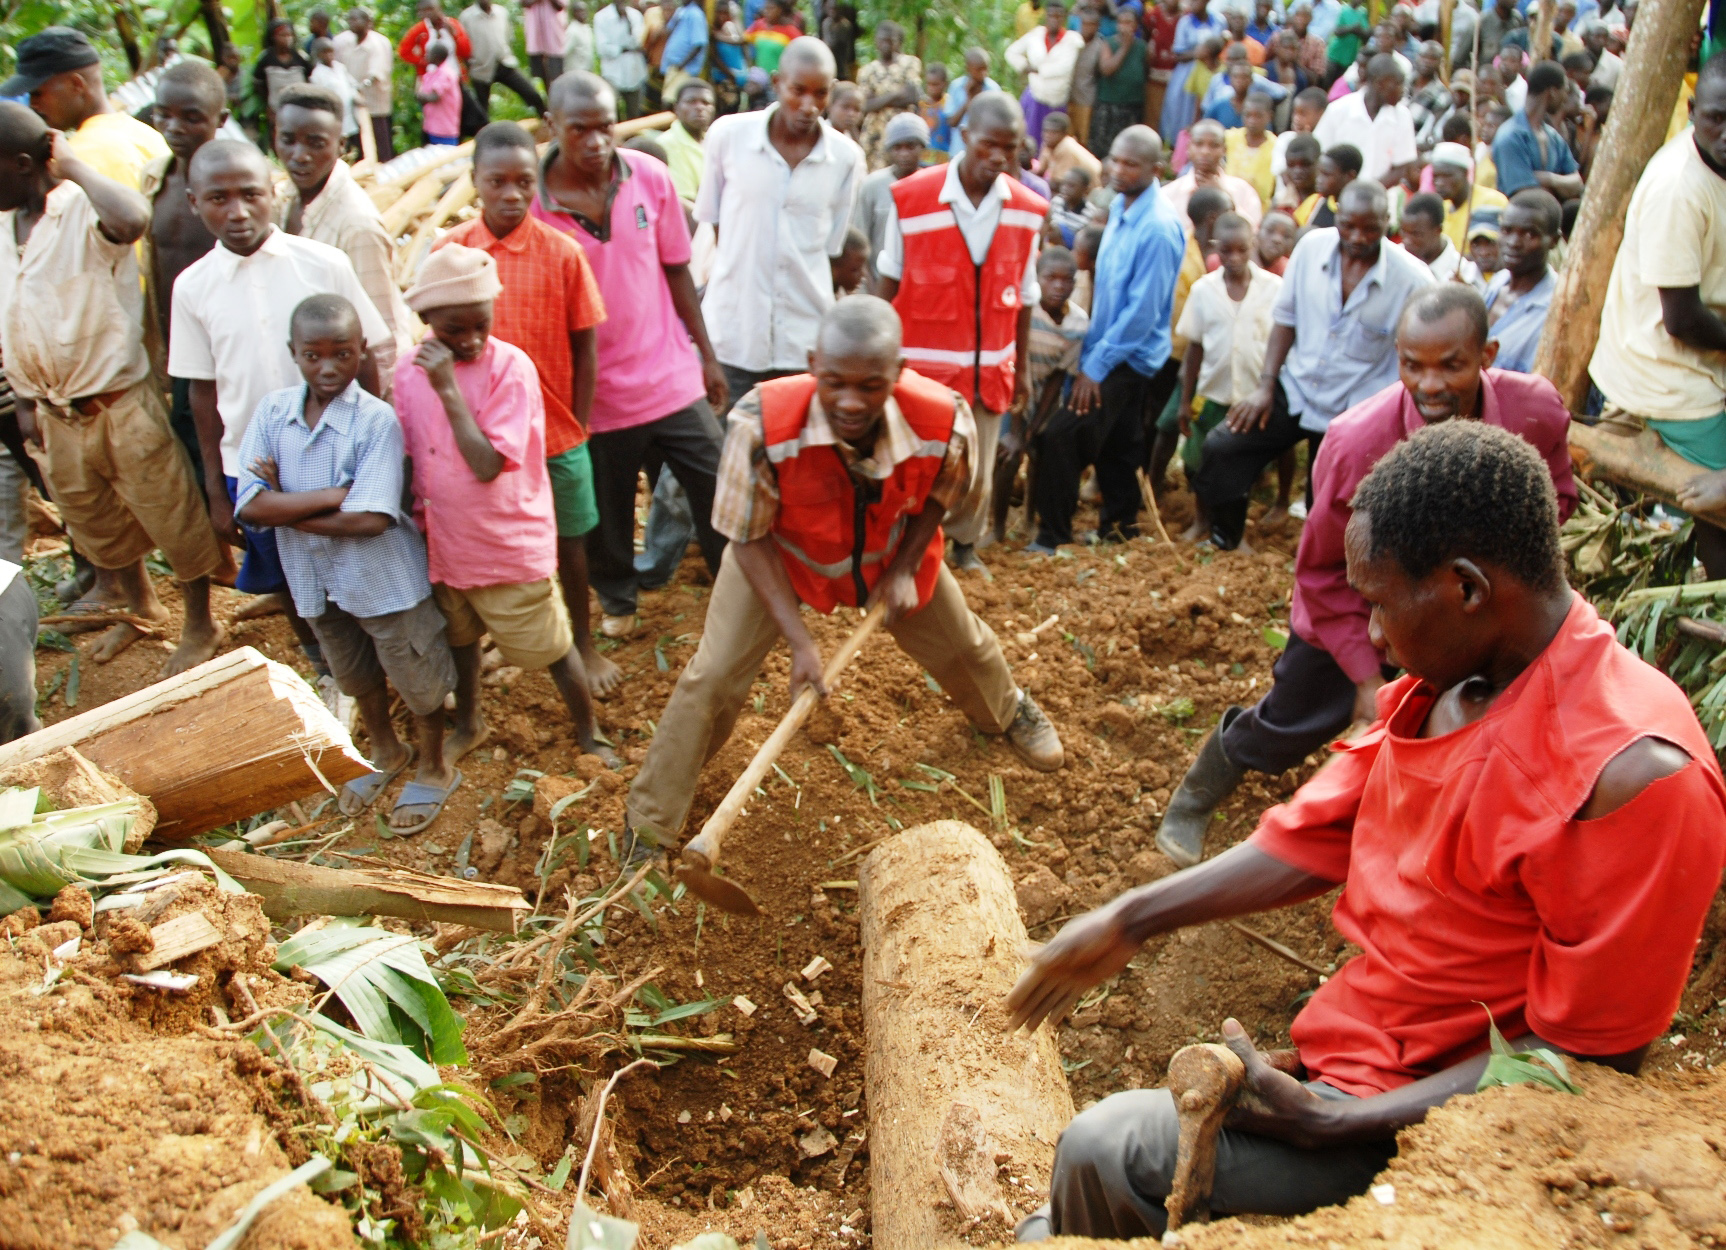 The local and Uganda Red Cross Society rescue teams trying to search for any survivors of the 25 June 2012 landslide that buried over 100 people including school children according to government and local officials